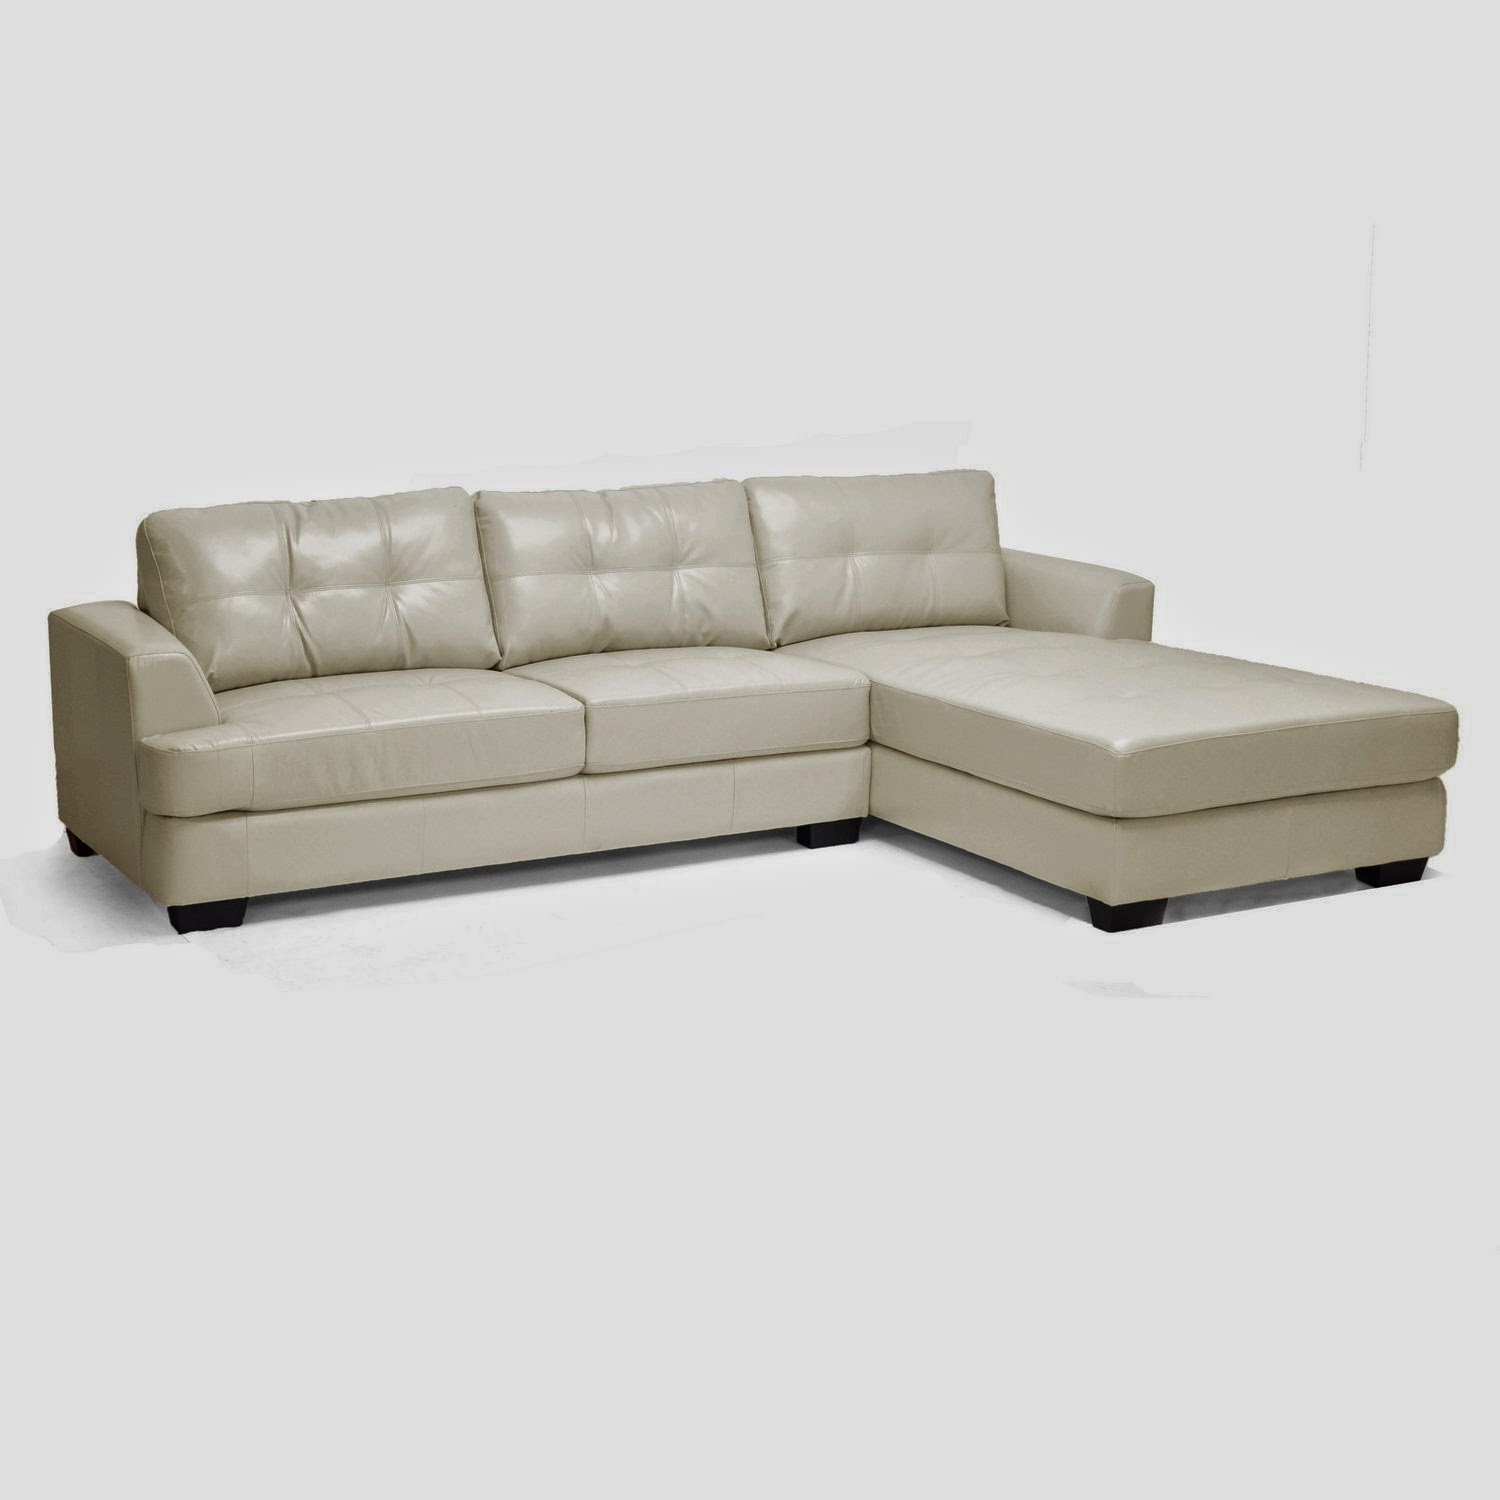 White leather couch white leather couch with chaise for White modern leather sofa